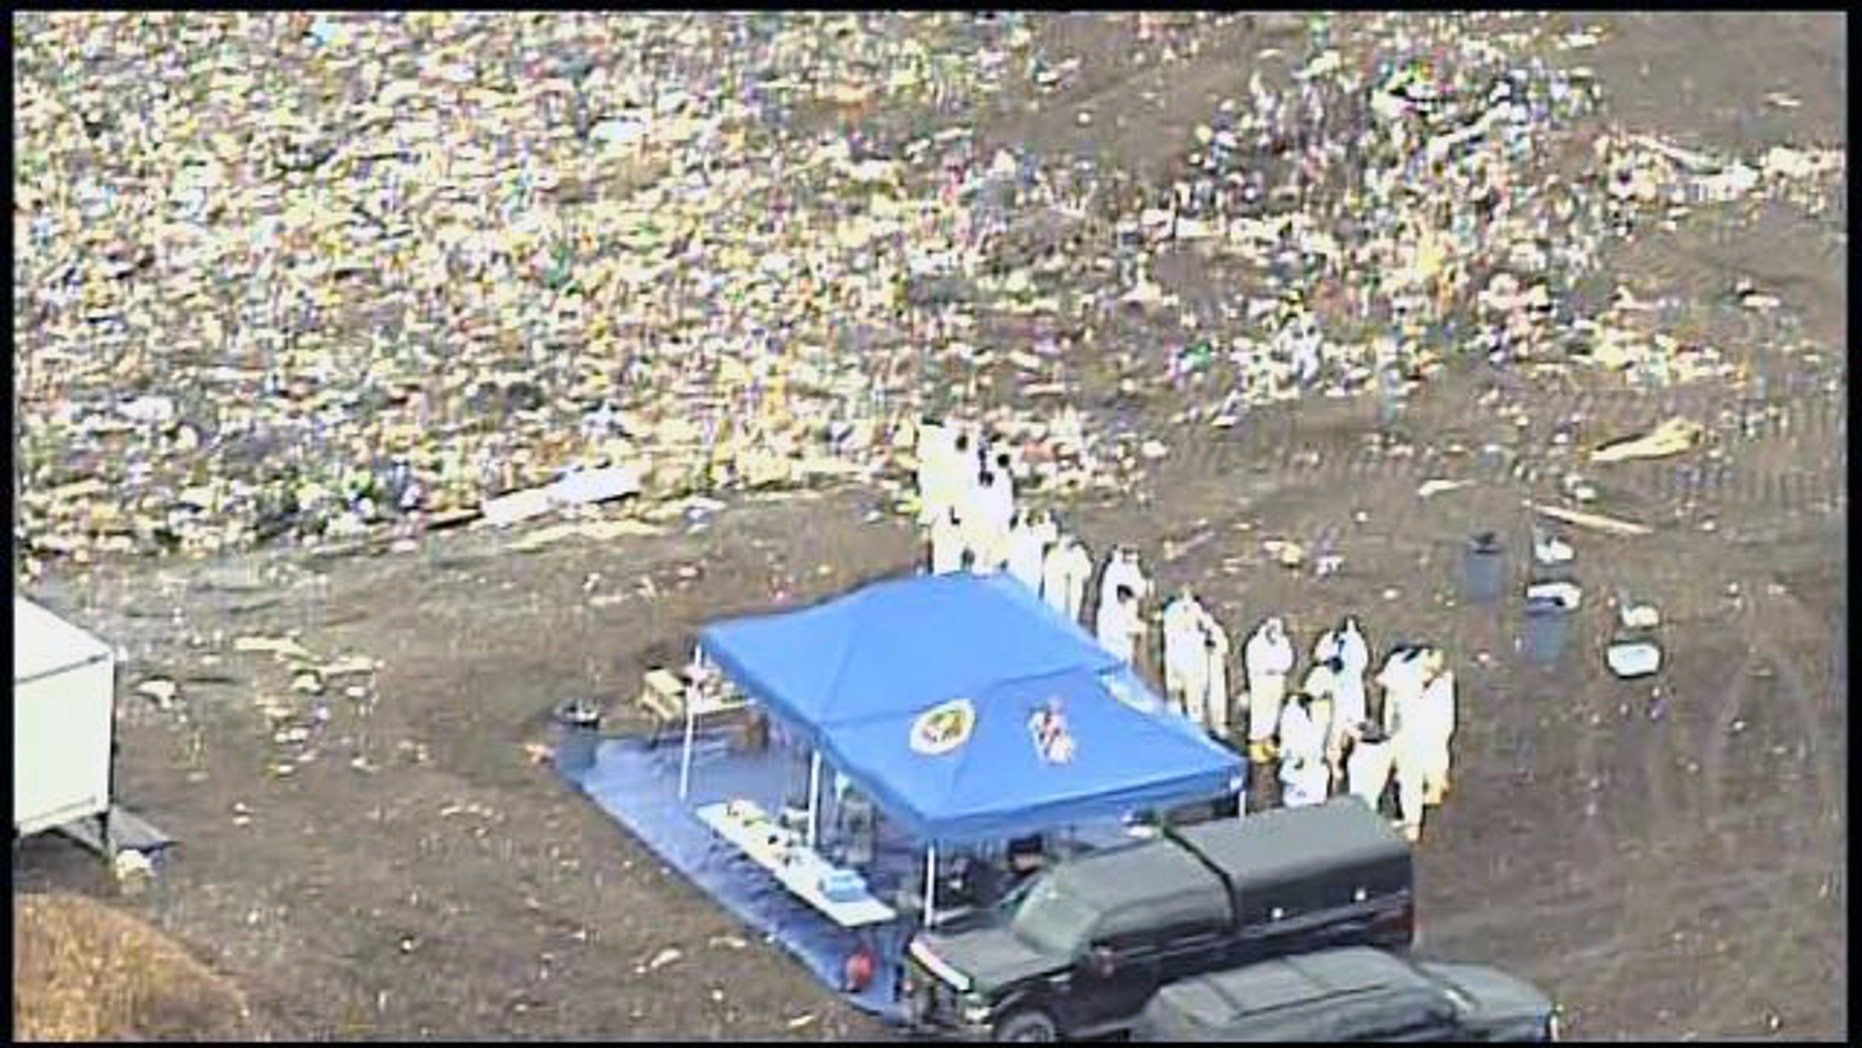 In this aerial photo FBI investigators are seen searching a landfill near the UMass-Dartmouth campus where Boston Marathon bombing suspect  Dzhokhar Tsarnaev was a student.